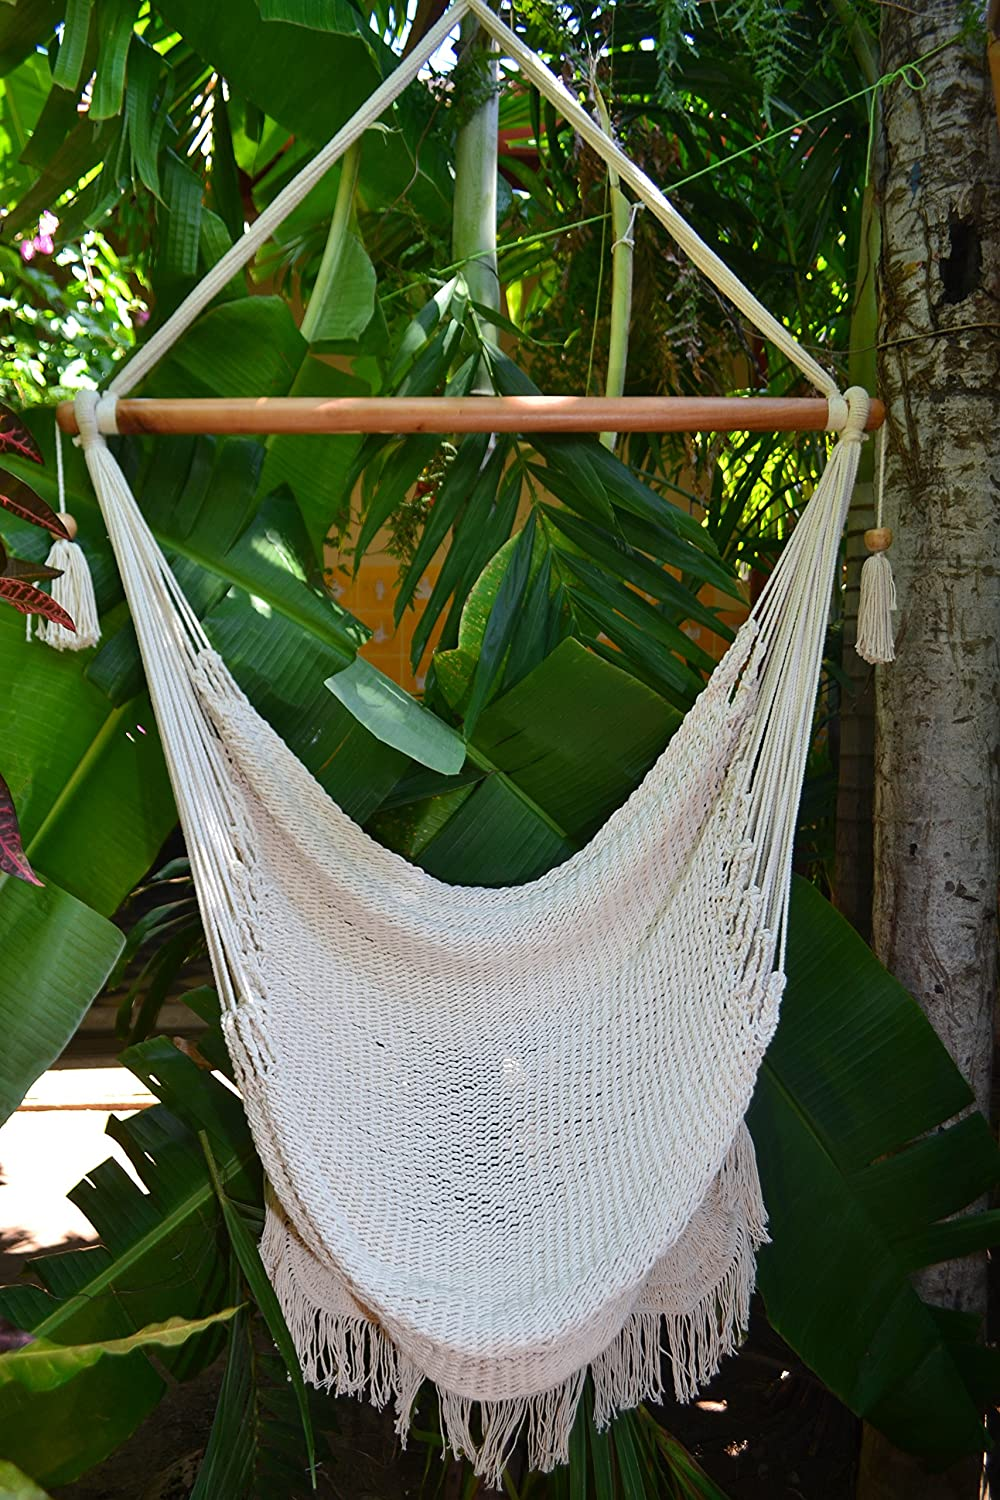 Perfect Amazon.com : Handmade Hanging Rope Hammock Chair   All Natural Indoor Or  Outdoor Porch Swing Patio Swing Chair (Off White) : Garden U0026 Outdoor